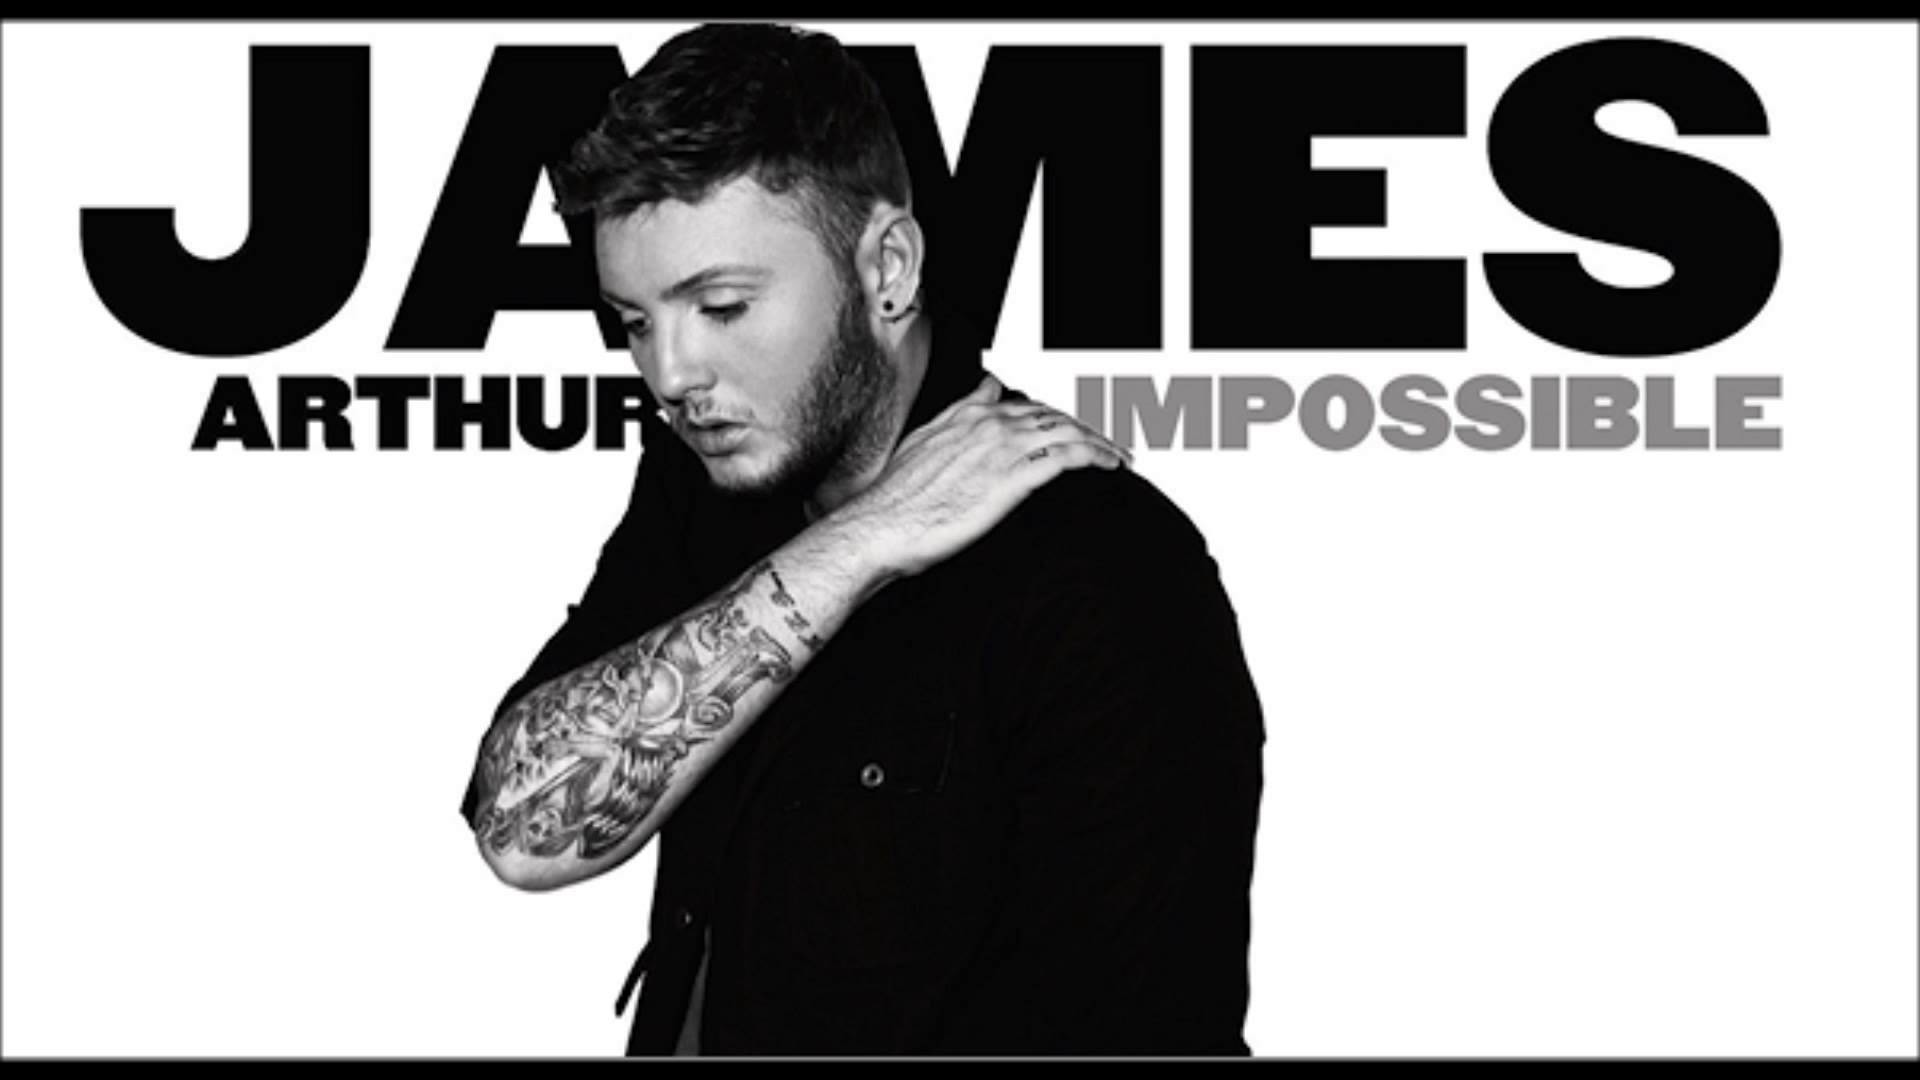 James Arthur ft The Notorious B.I.G – Impossible (NickT Remix)